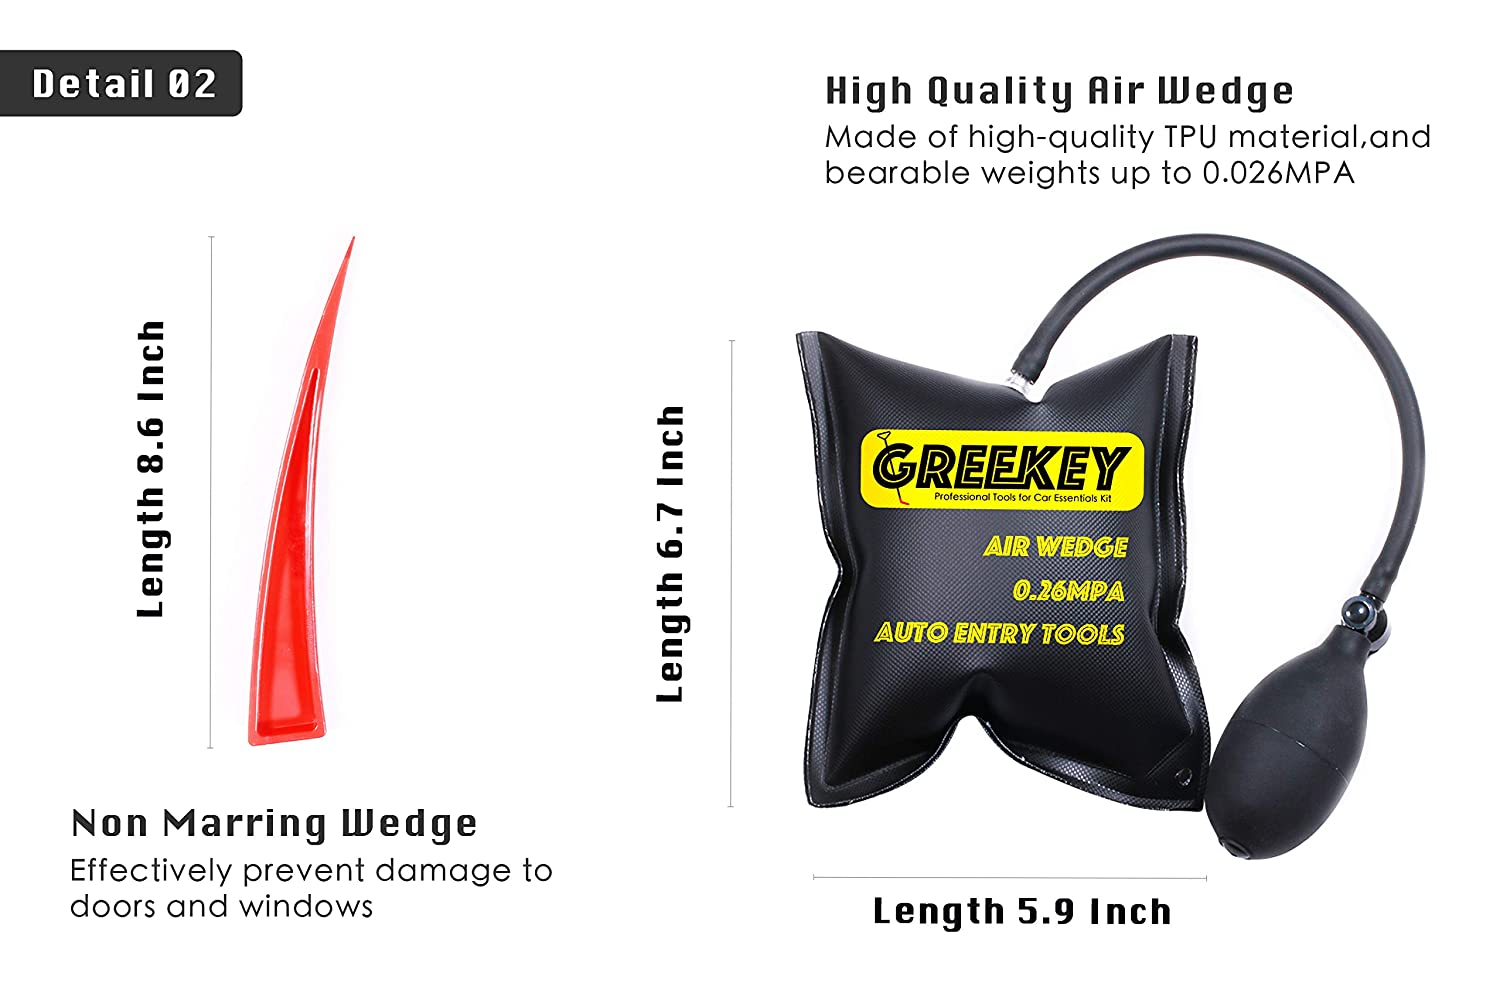 Professional Tools for Unlock Car Door and Home Door-Window Car Essentials Kit with Long Reach Grabber Non Marring Wedge Air Wedge